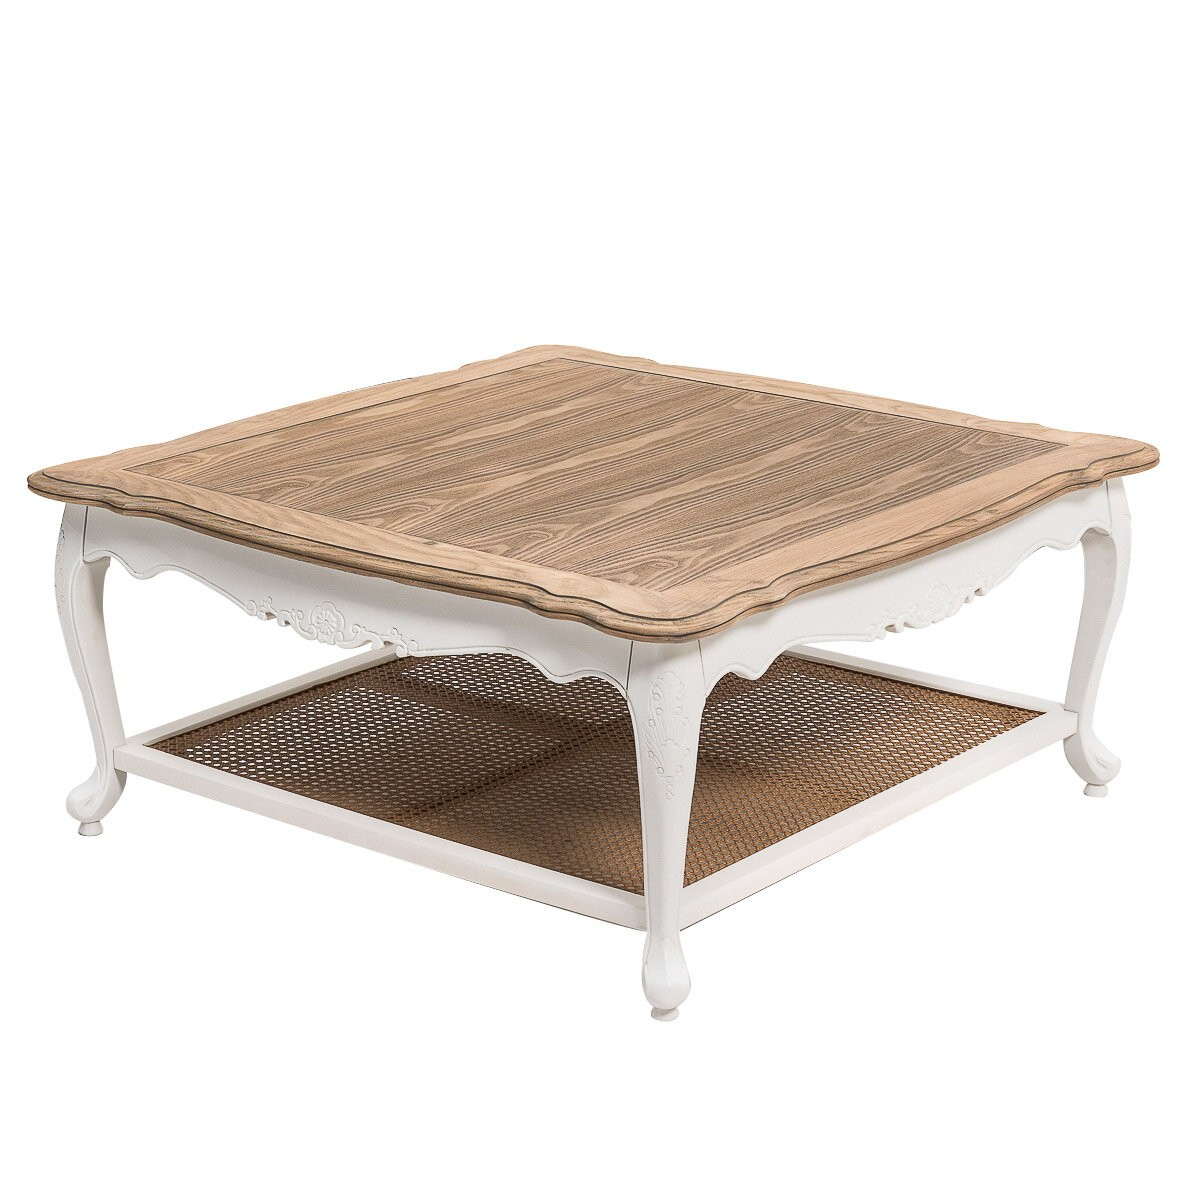 French Provincial Furniture Square Coffee & Tea Table In